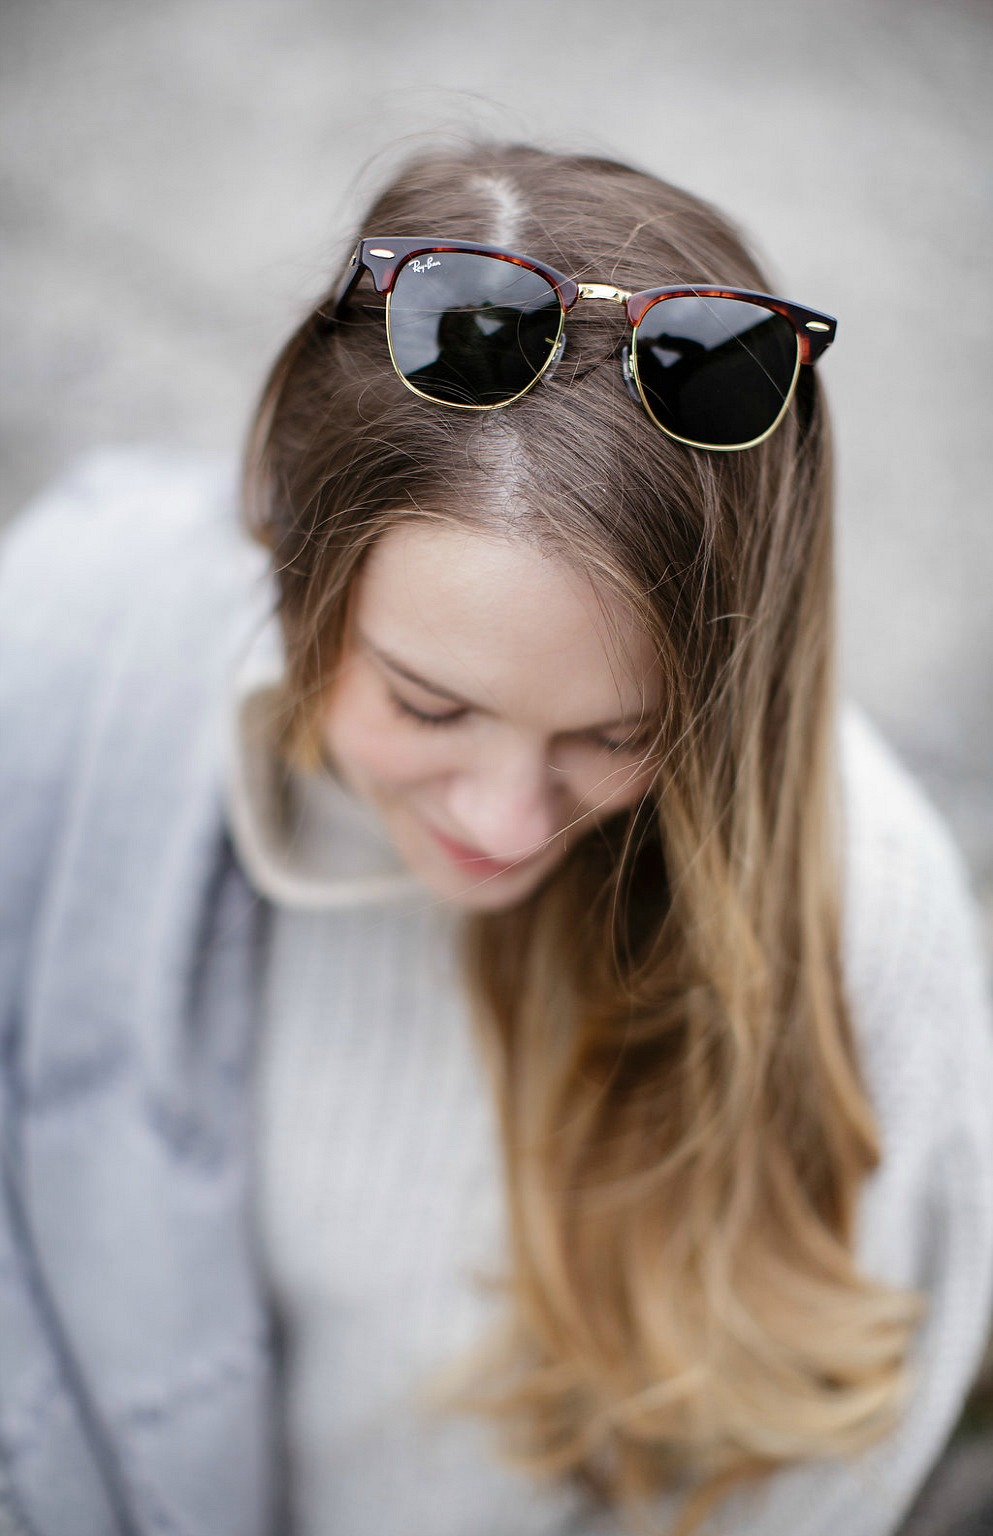 ray-ban-clubmaster-sunglasses-rose-city-style-guide-fall-fashion-giveaway-canadian-blogger-maternity-outfit-maternity-style-smart-buy-glasses-26